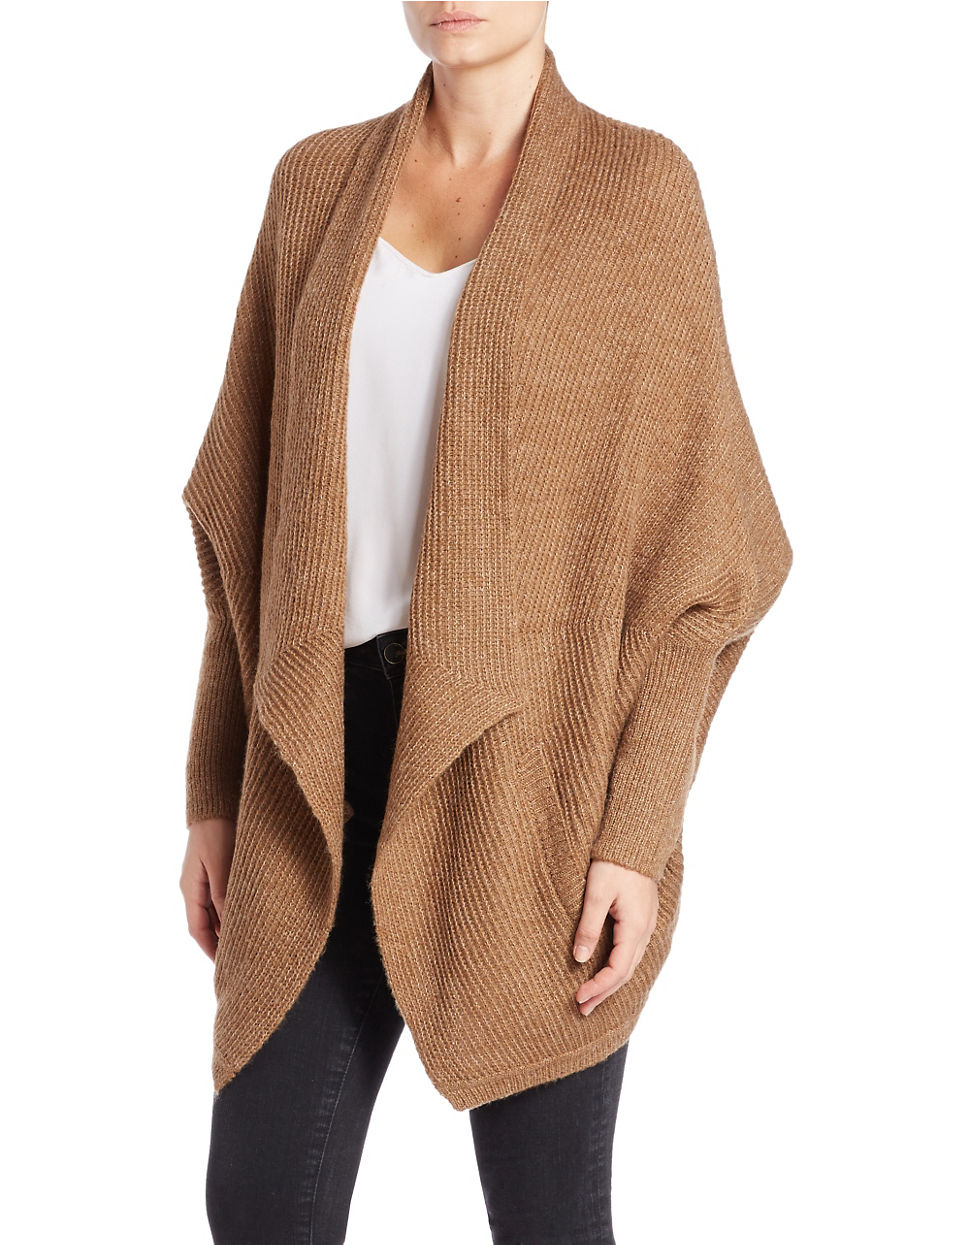 Lord & taylor Wool-blend Cocoon Cardigan in Brown | Lyst